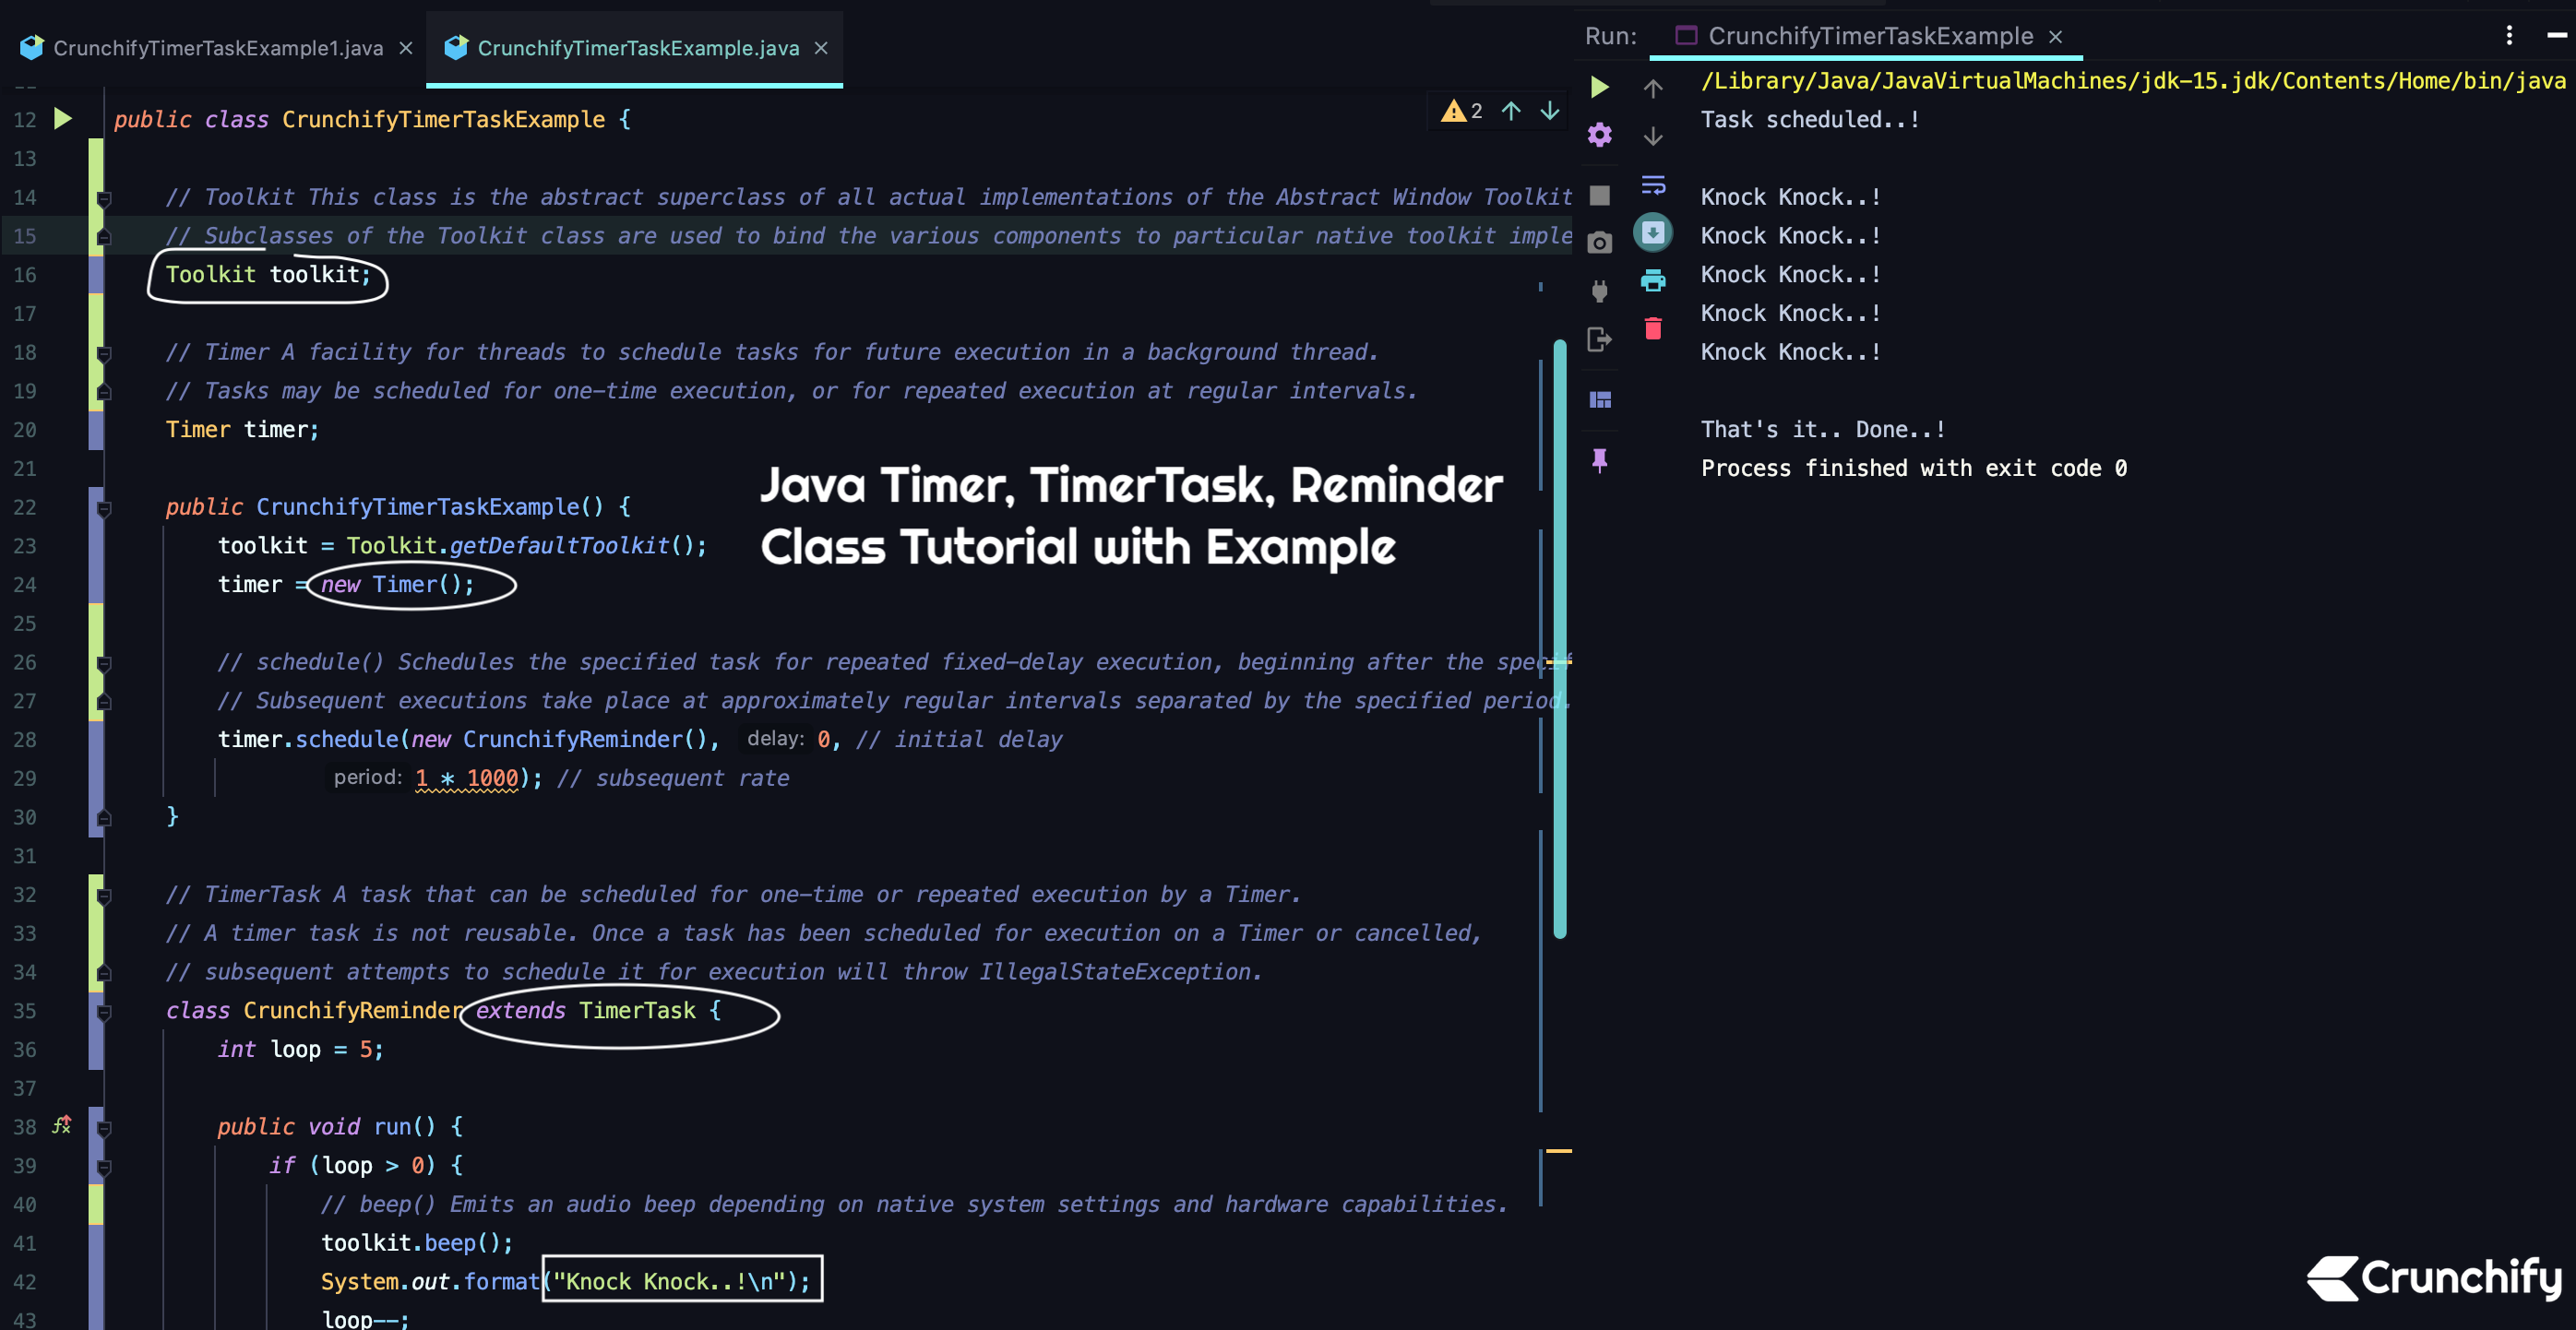 Java Timer, TimerTask, Reminder Class Tutorial with Example